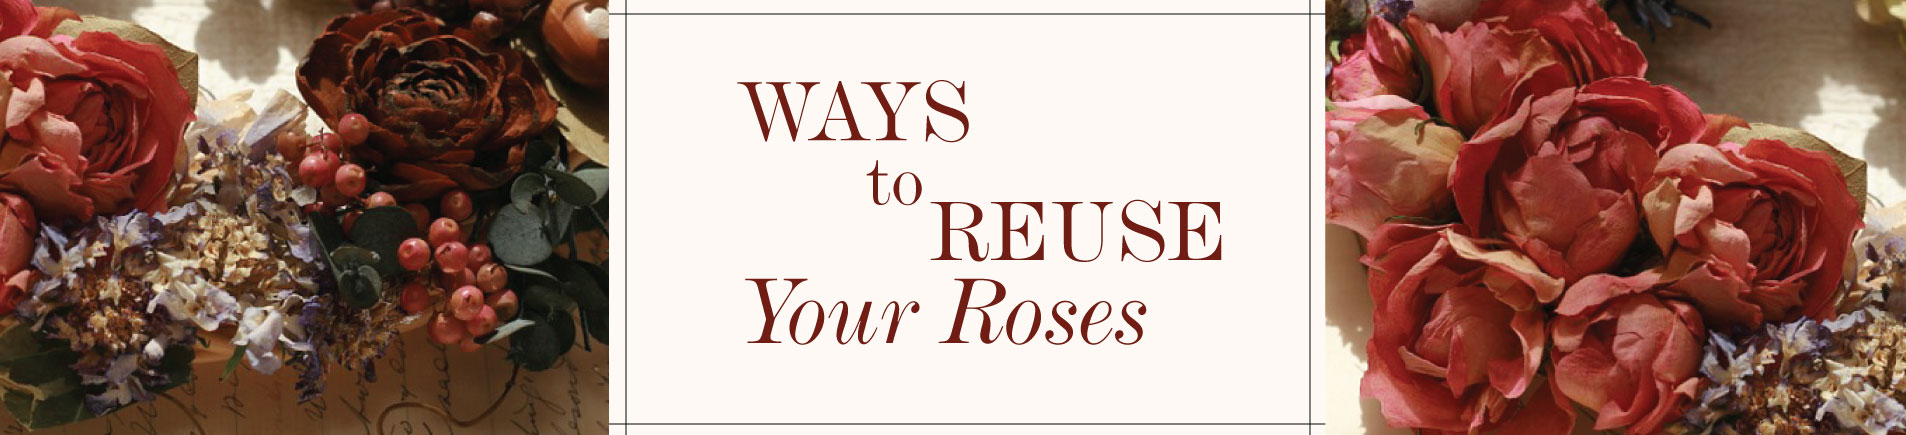 H8 Awesome Ways to Reuse Your Roses as a Practical Spender